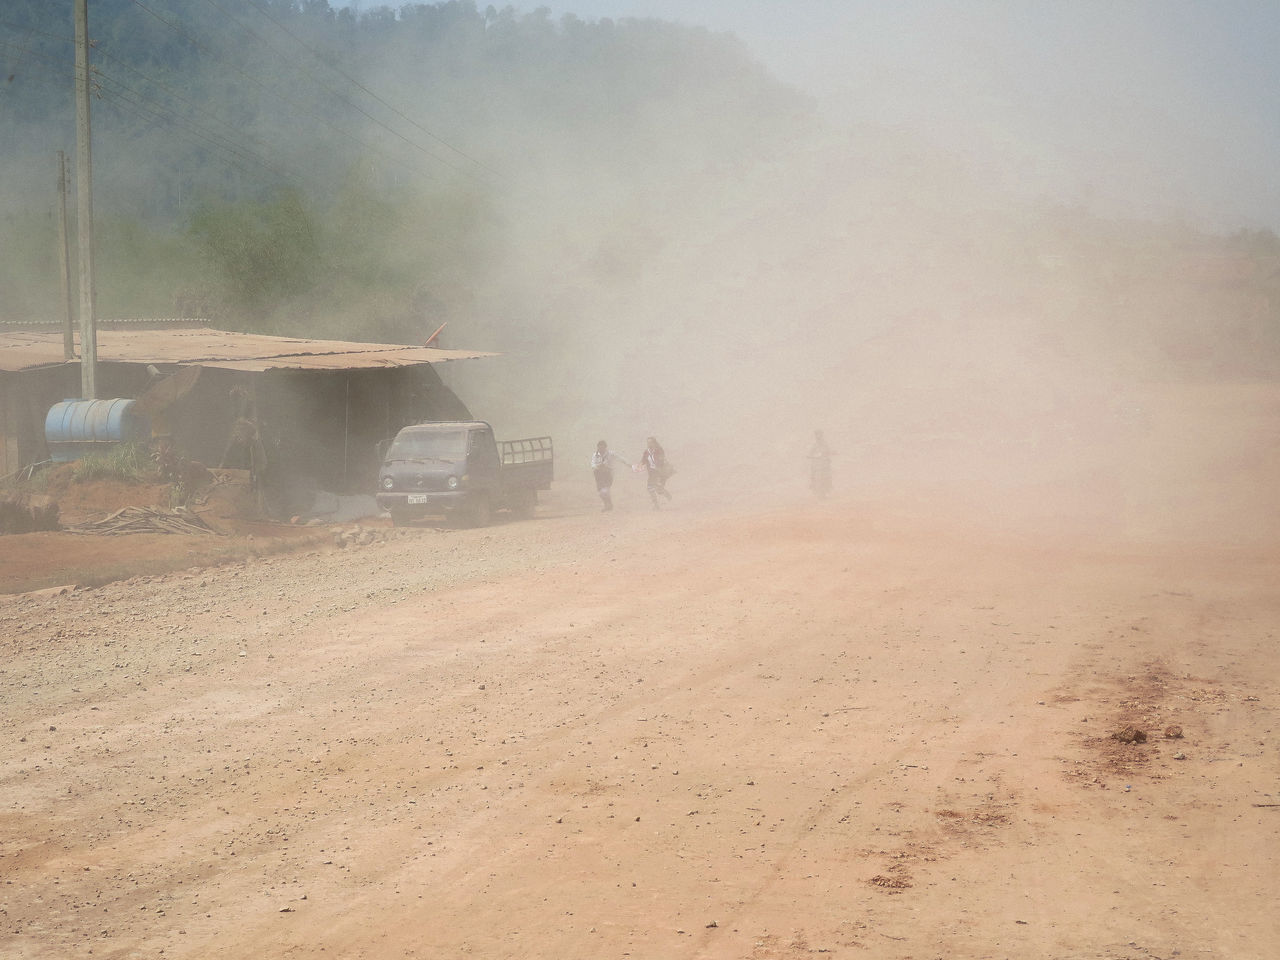 People Running In Dust Over Dirt Road